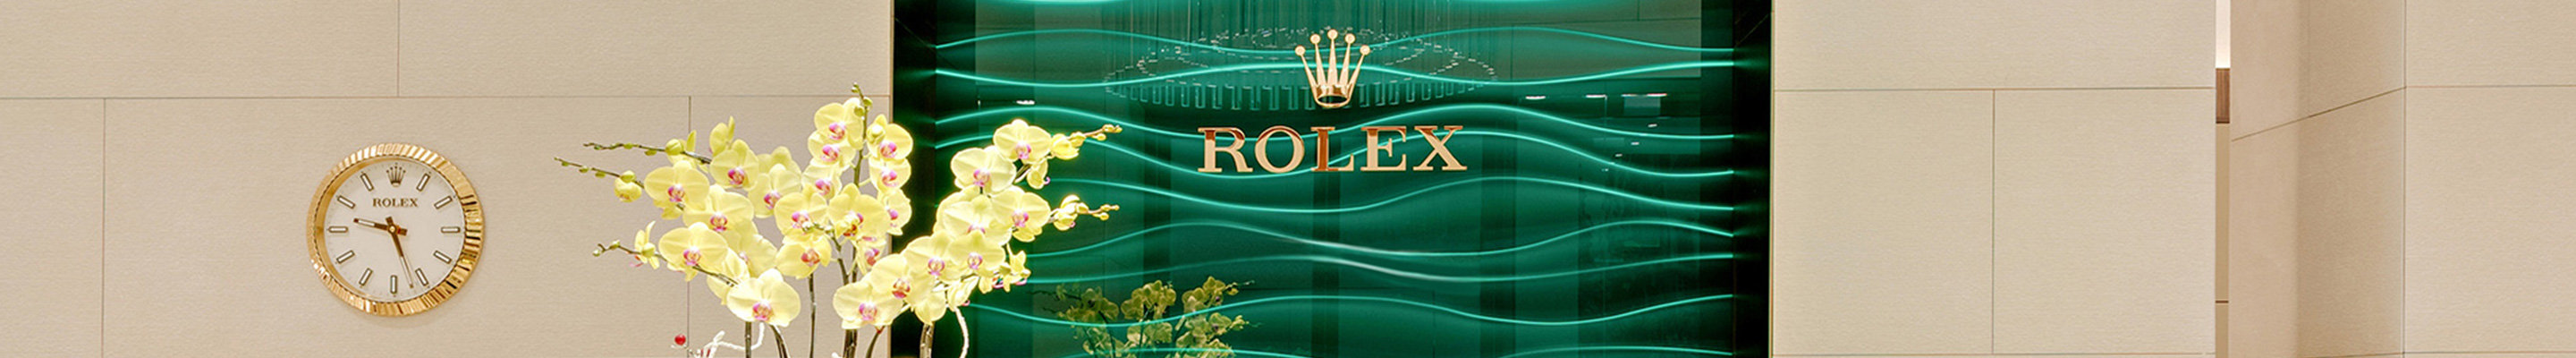 Rolex Showrooms at Goldfinger Jewelries - St. Martin St. Marteen St. Barthelémy - Caribbean